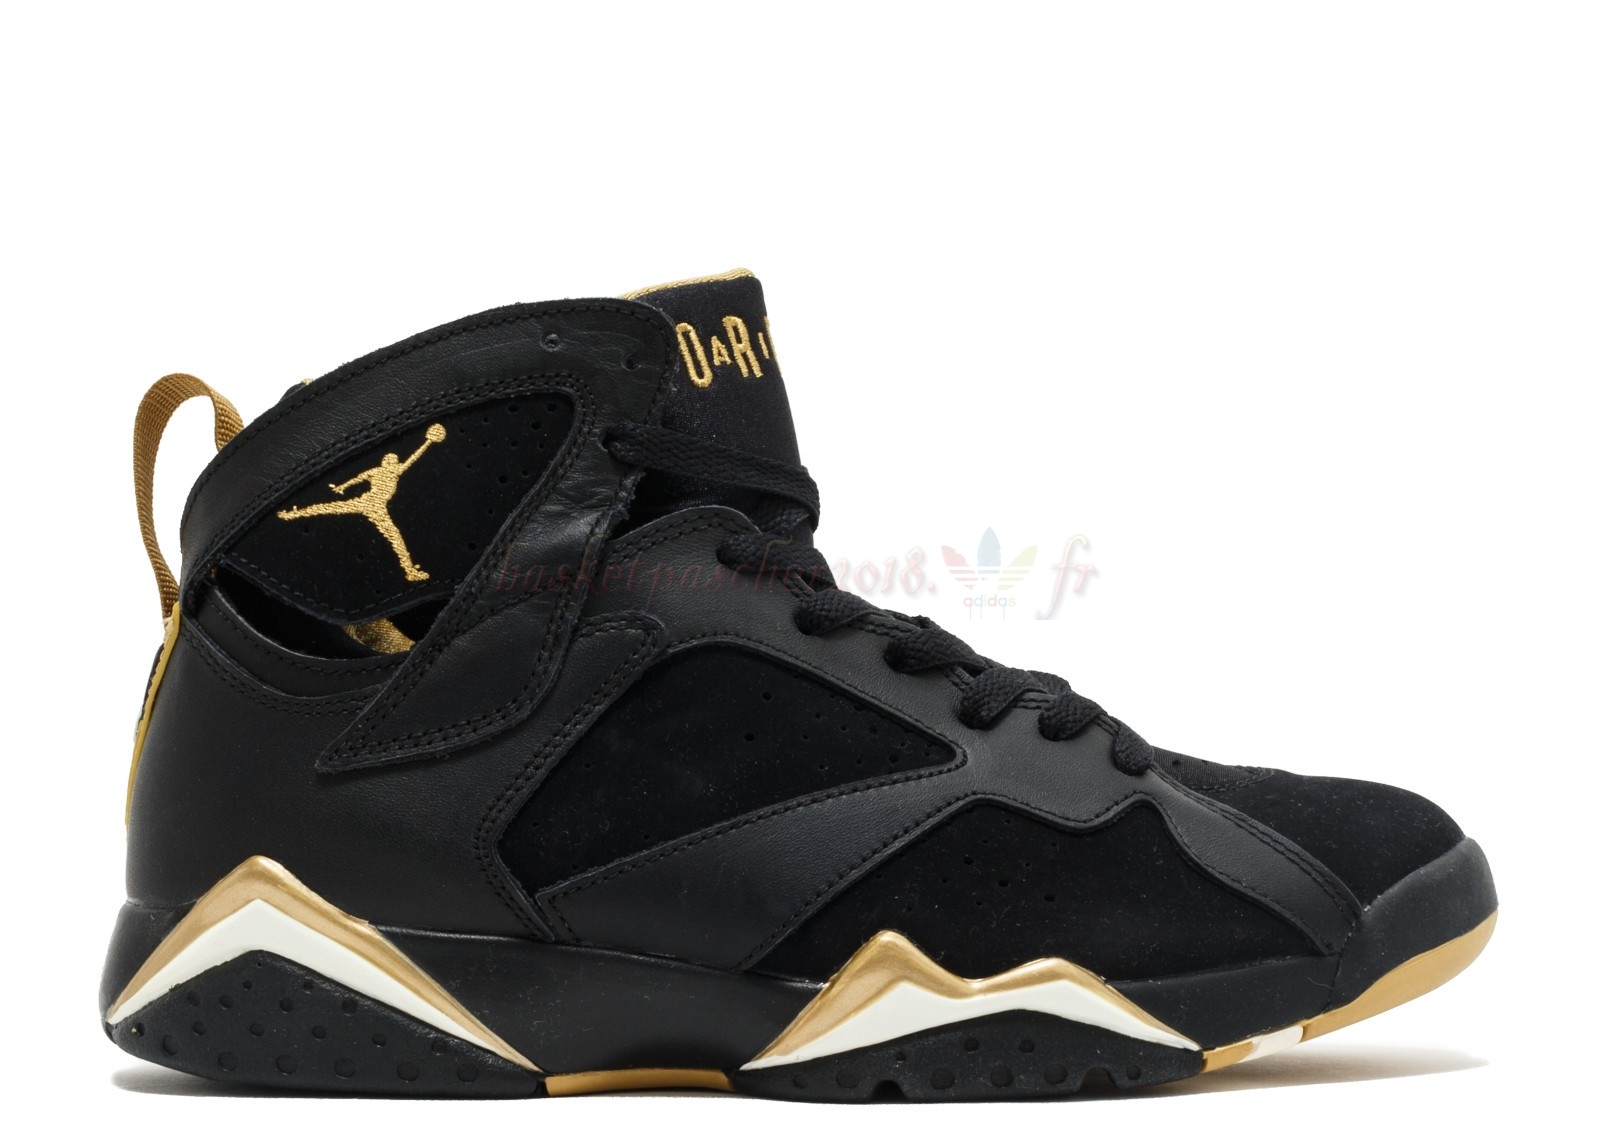 "Vente Chaude Chaussures De Basketball Homme Air Jordan 7 Retro ""Golden Moments Package"" Noir Or (304775-030) Pas Cher"